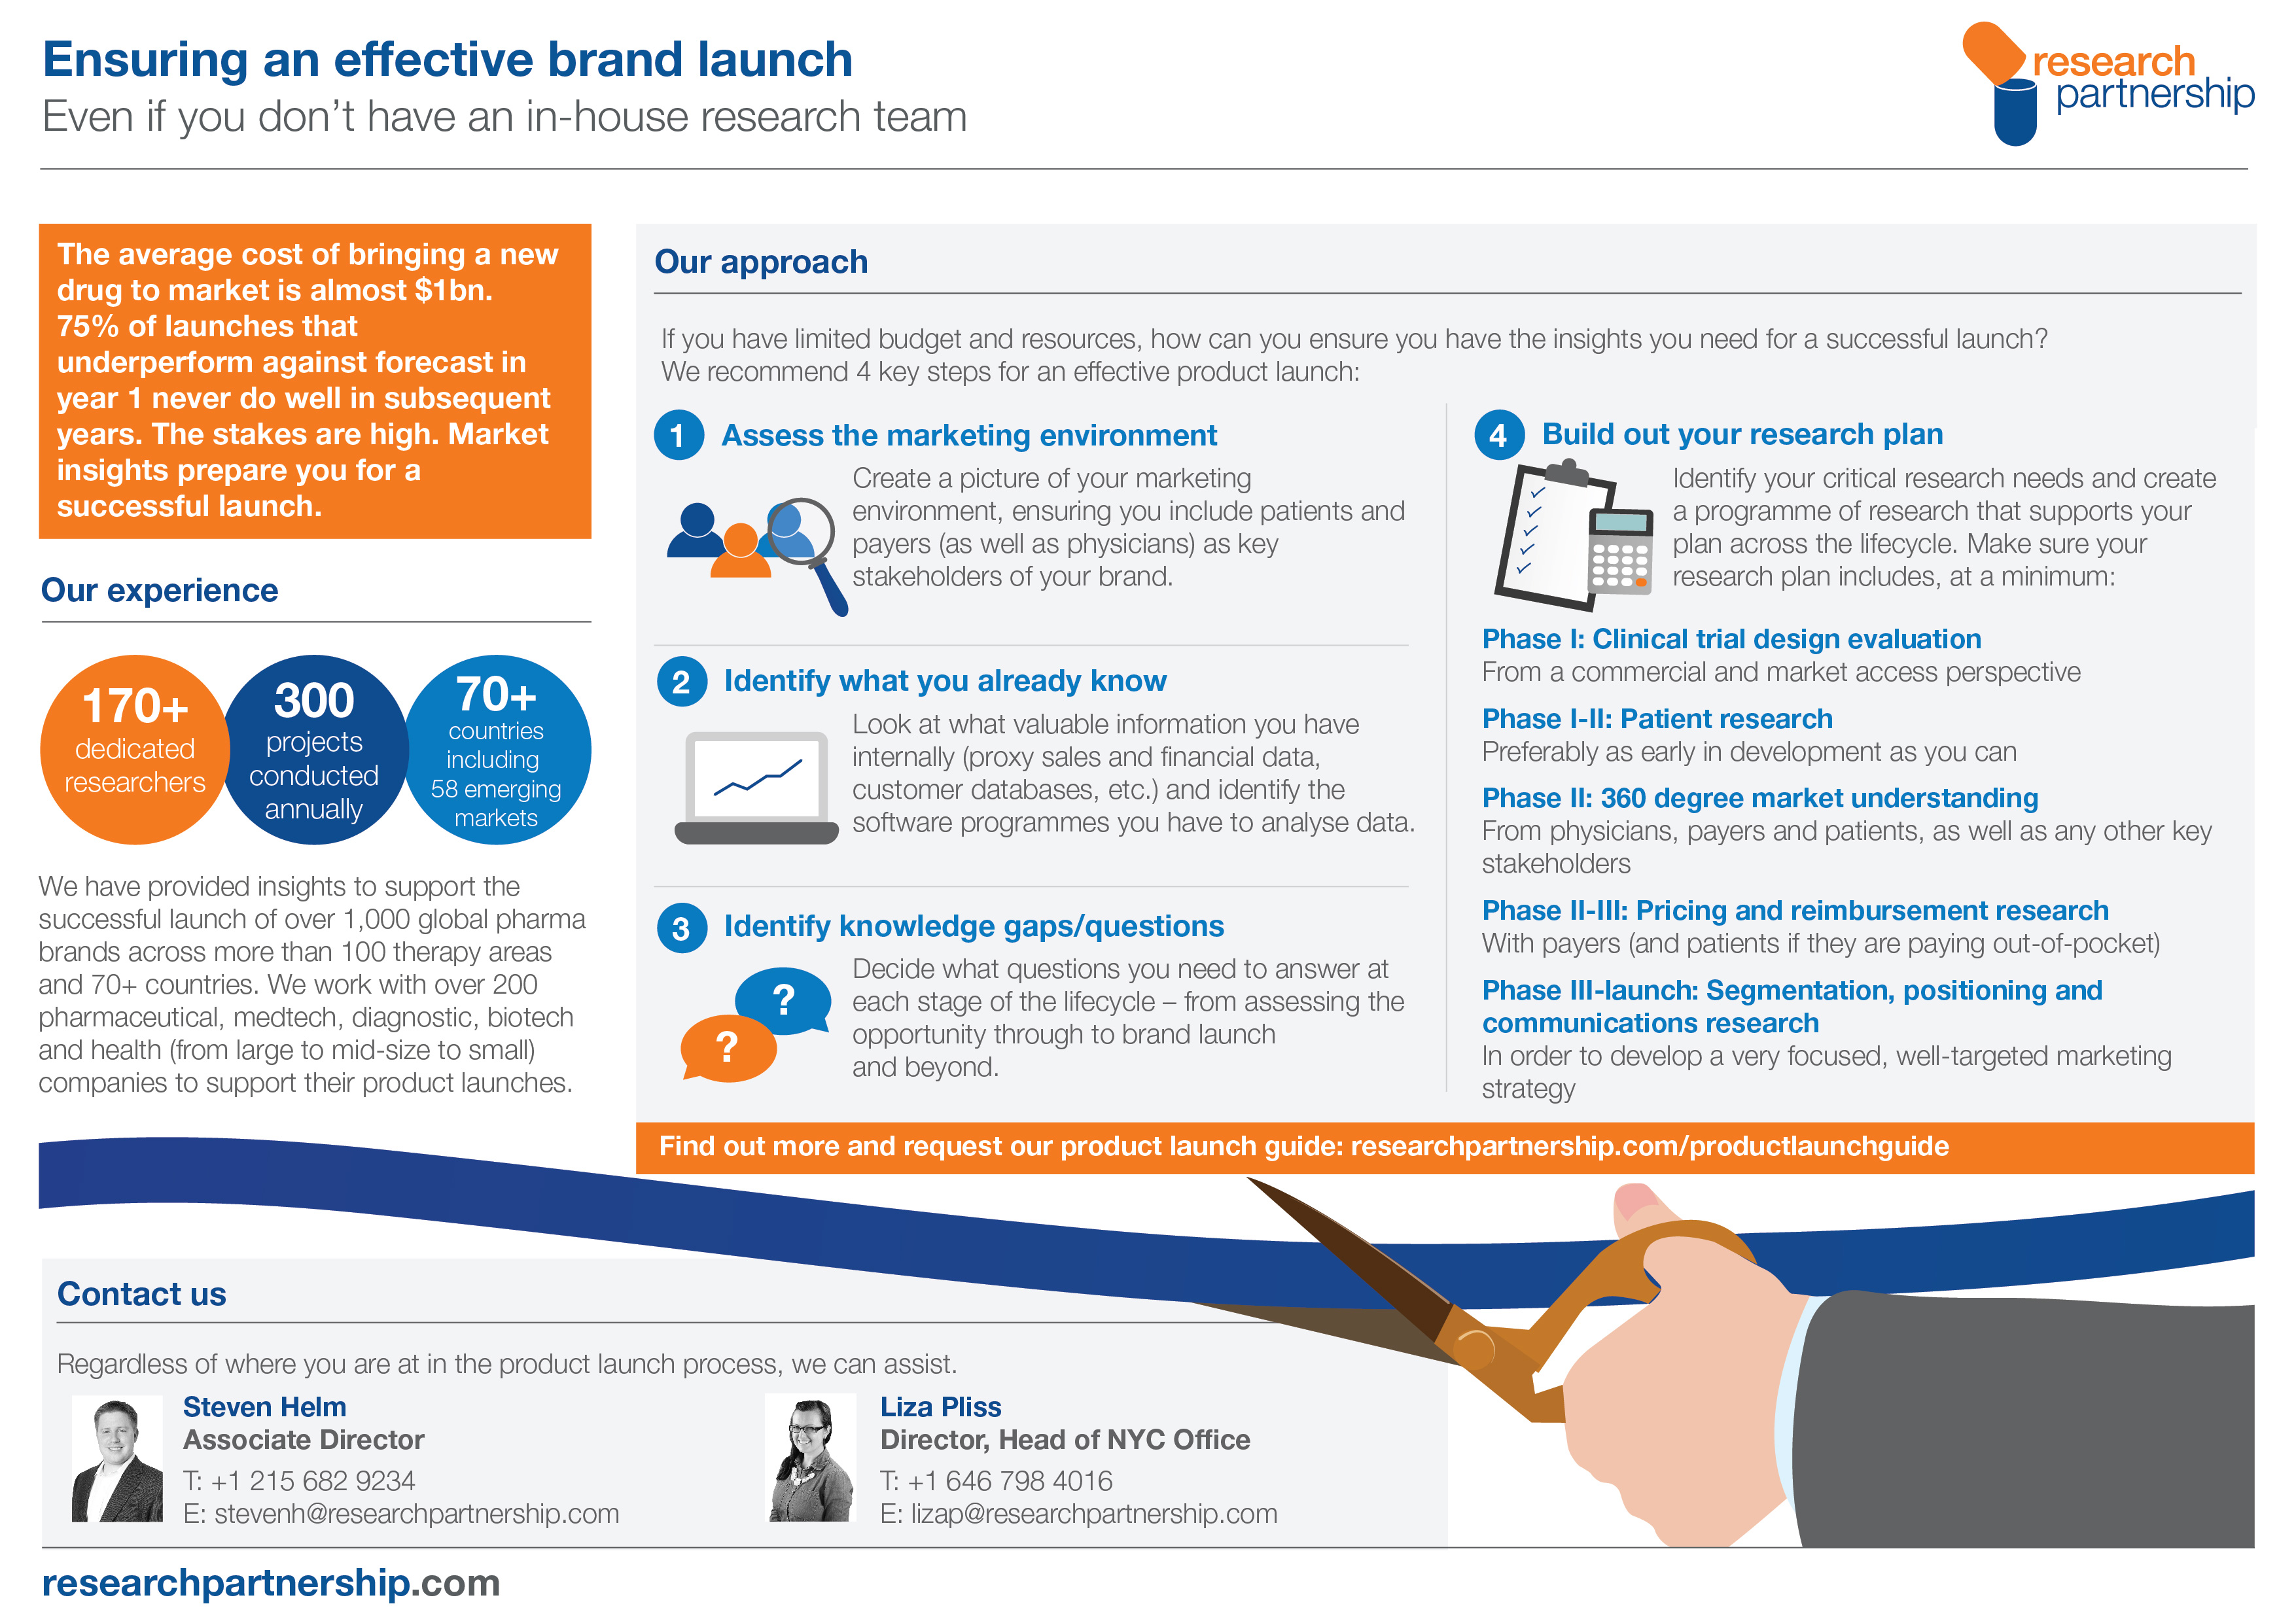 Ensuring an effective brand launch infographic